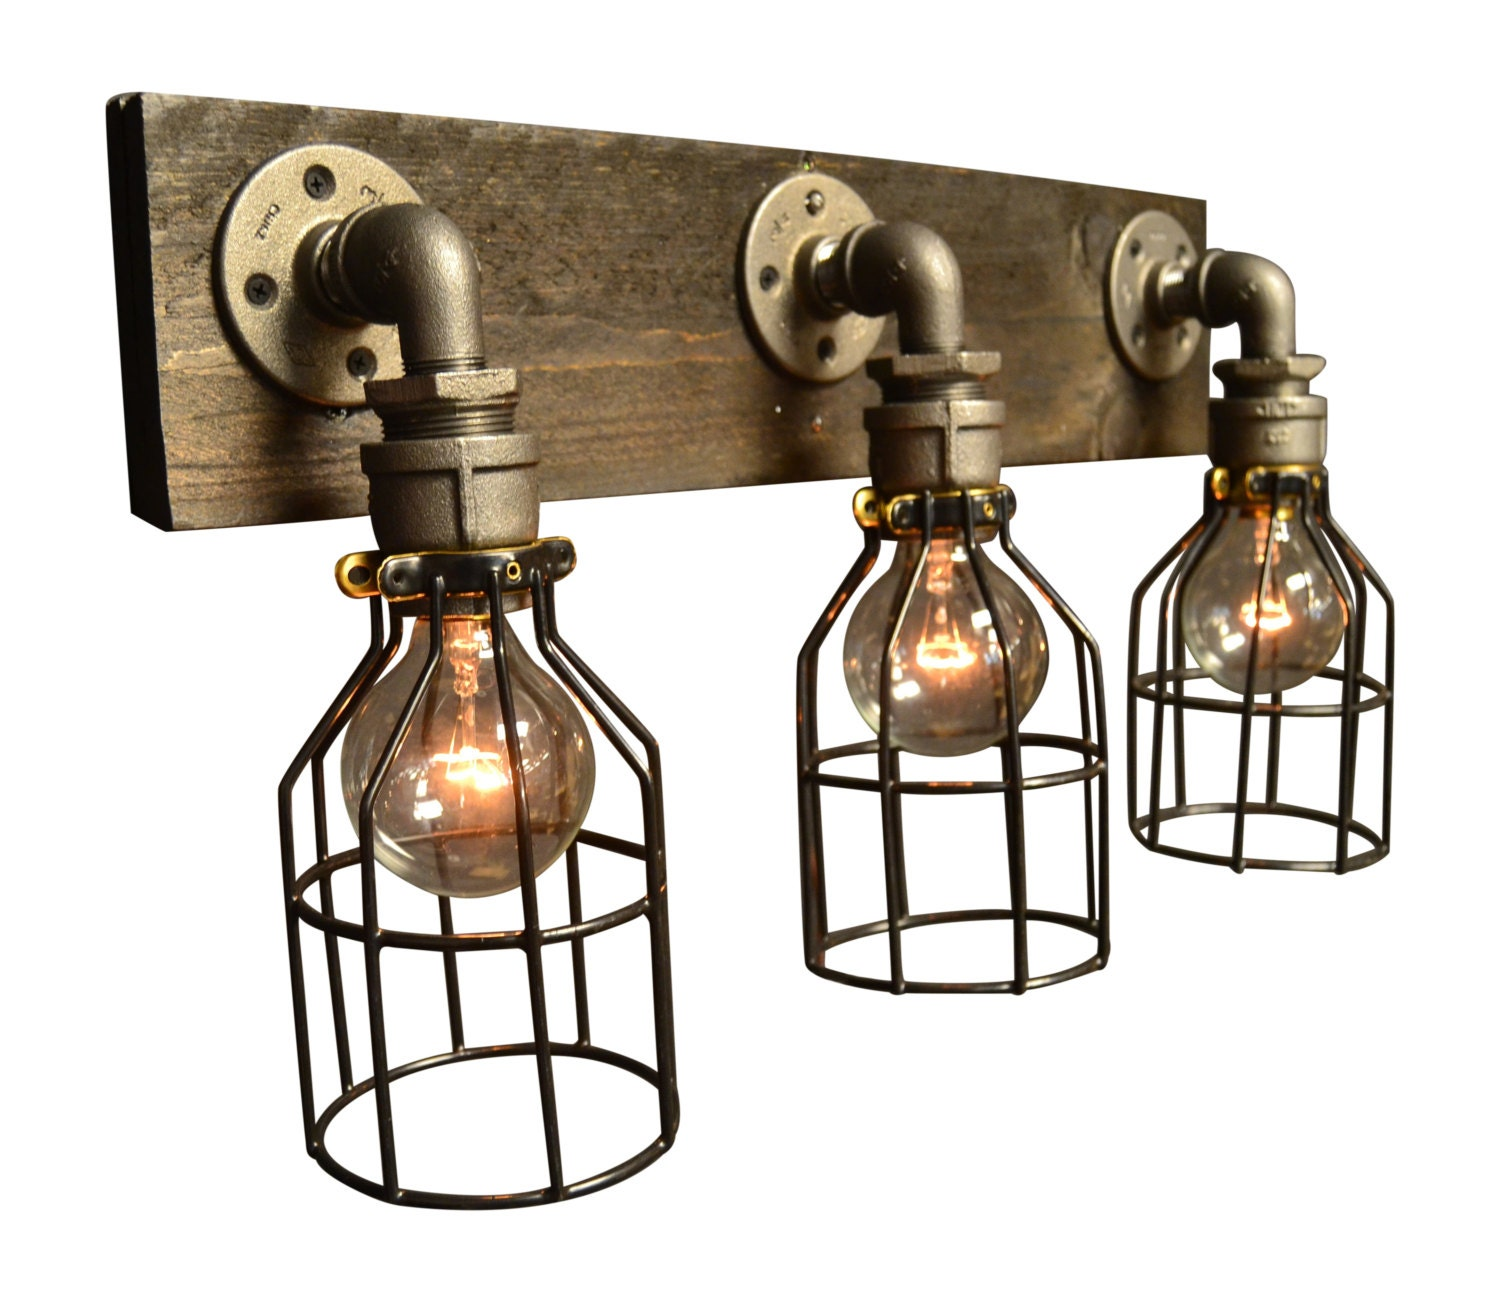 Bathroom Light Fixtures With Edison Bulbs vanity light home lighting light fixture bathroom light